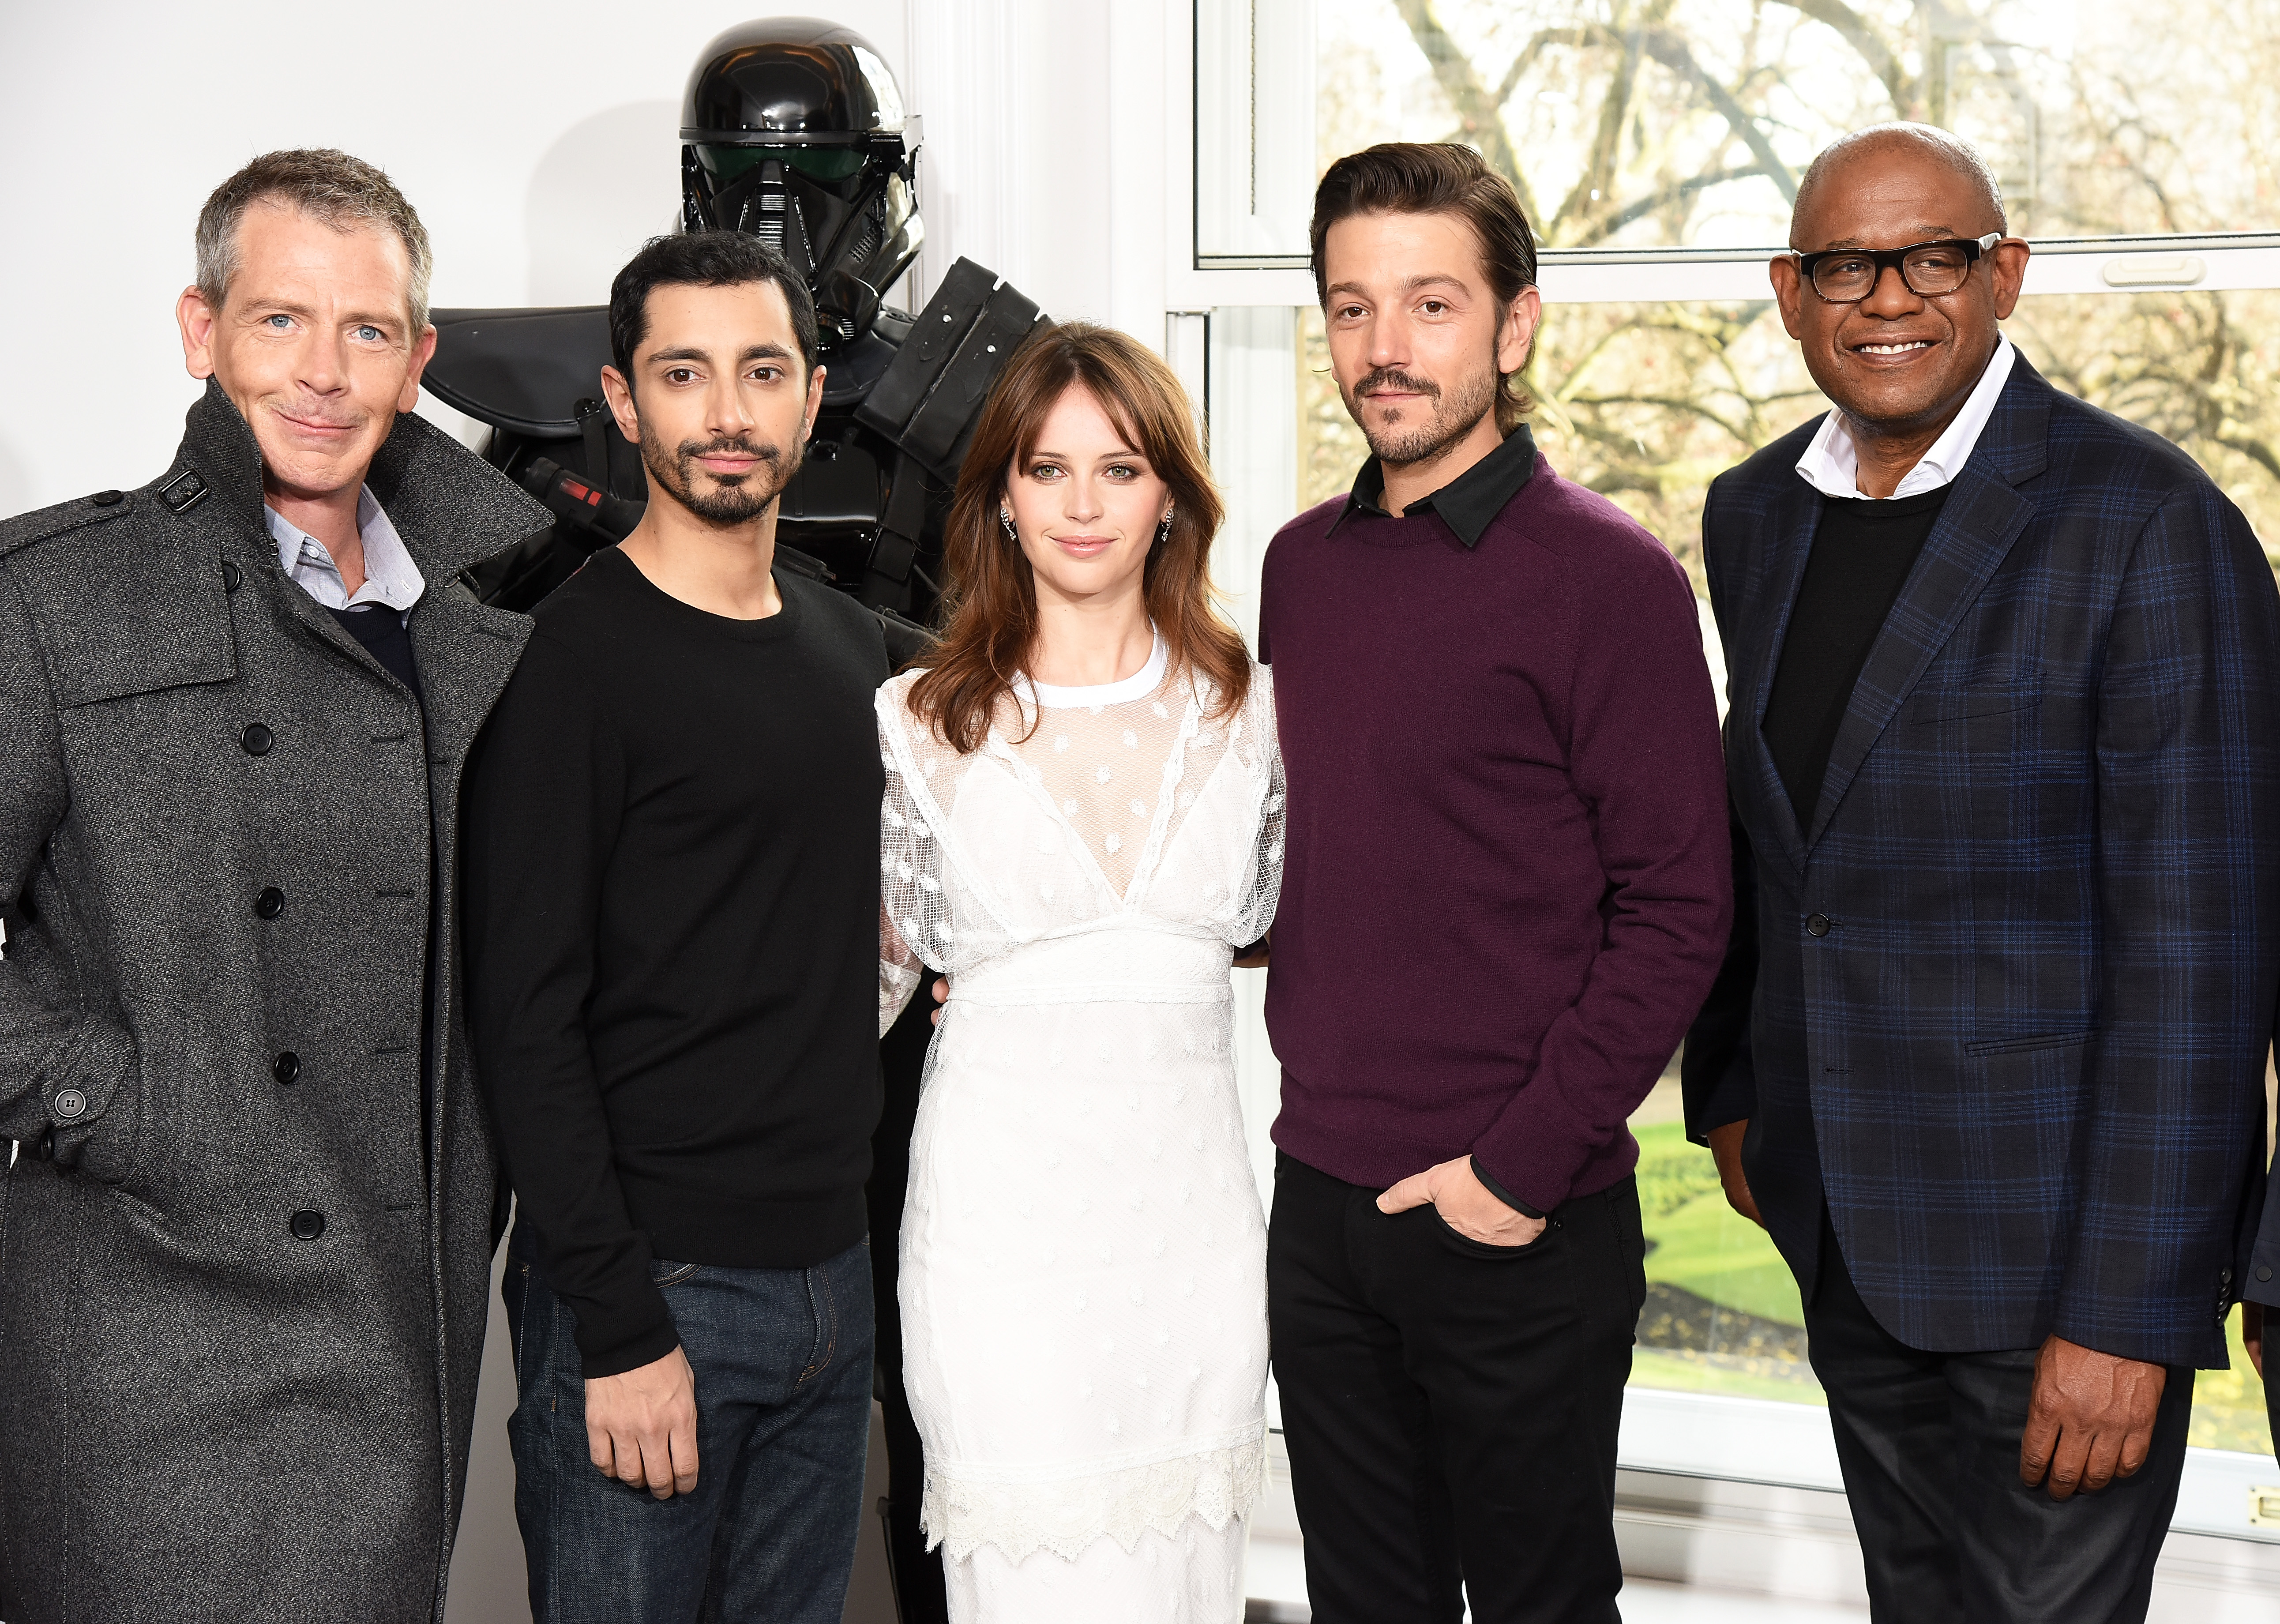 LONDON, ENGLAND - DECEMBER 14: (L-R) Ben Mendelsohn, Riz Ahmed, Felicity Jones; Diego Luna and Forest Whitaker attend the  Rogue One: A Star Wars Story  photocall at The Corinthia Hotel on December 14, 2016 in London, England.  (Photo by Dave J Hogan/Getty Images)